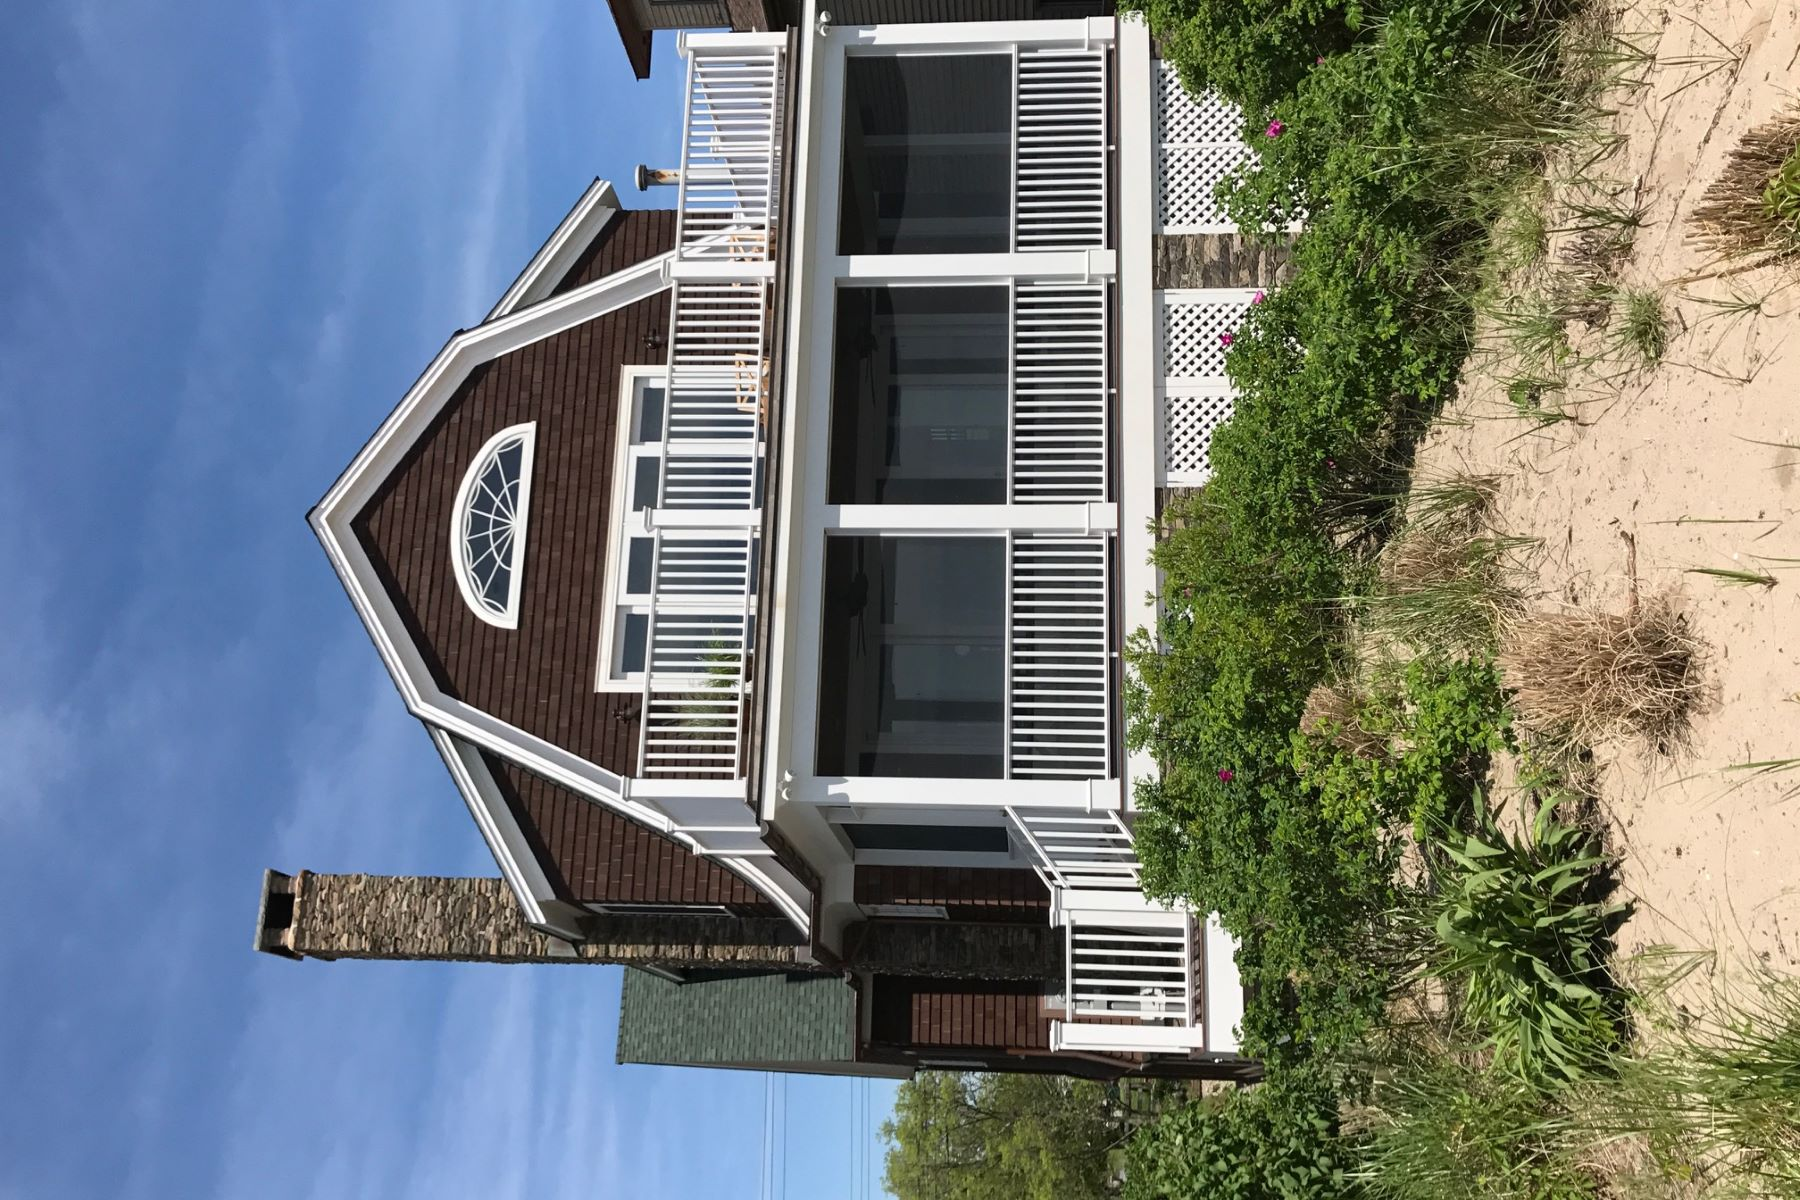 Single Family Home for Sale at Nantucket on Fairfield Beach 1445 Fairfield Beach Road Fairfield, Connecticut 06824 United States